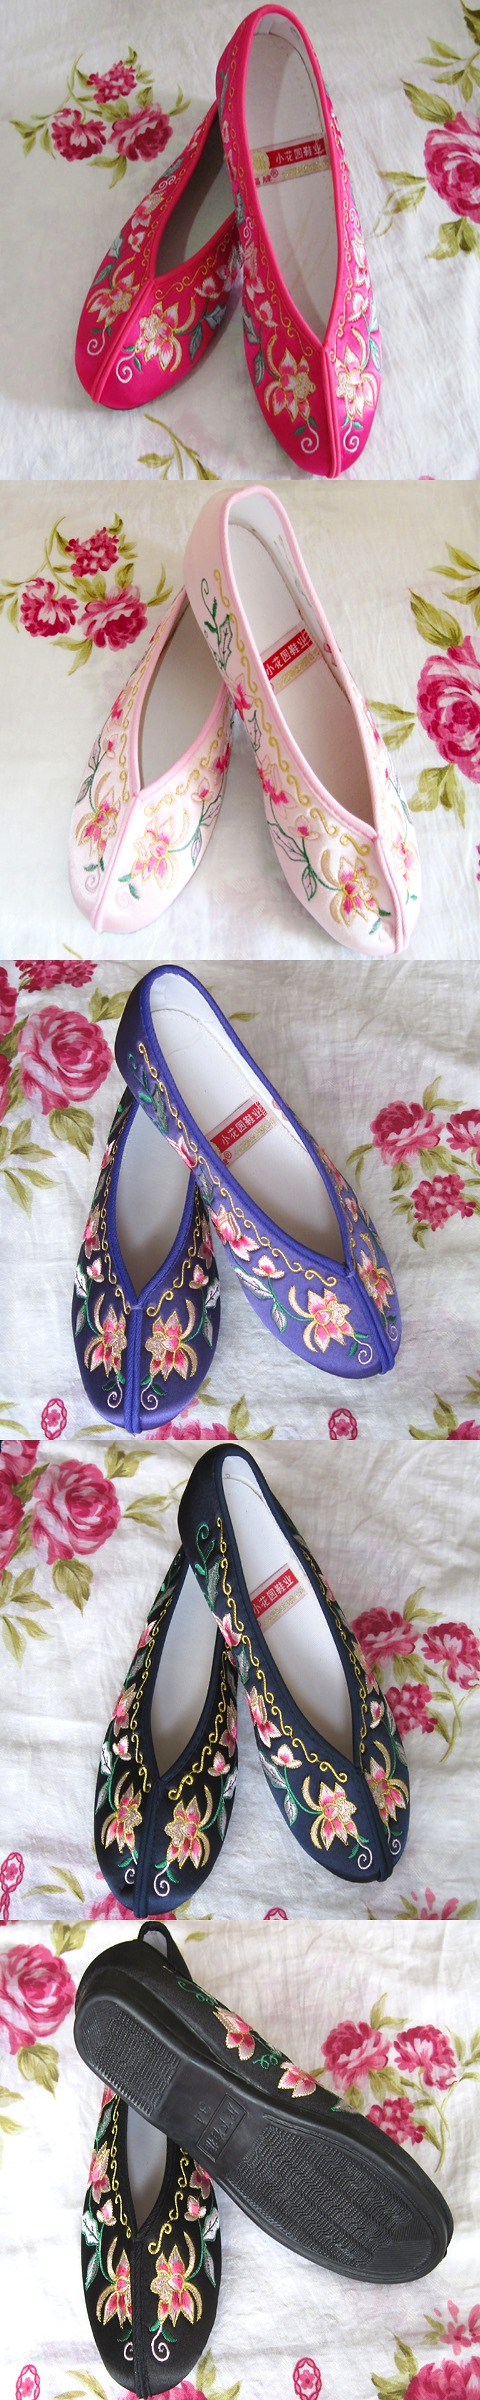 Lotus Gege Embroidery Shoes (Multicolor)